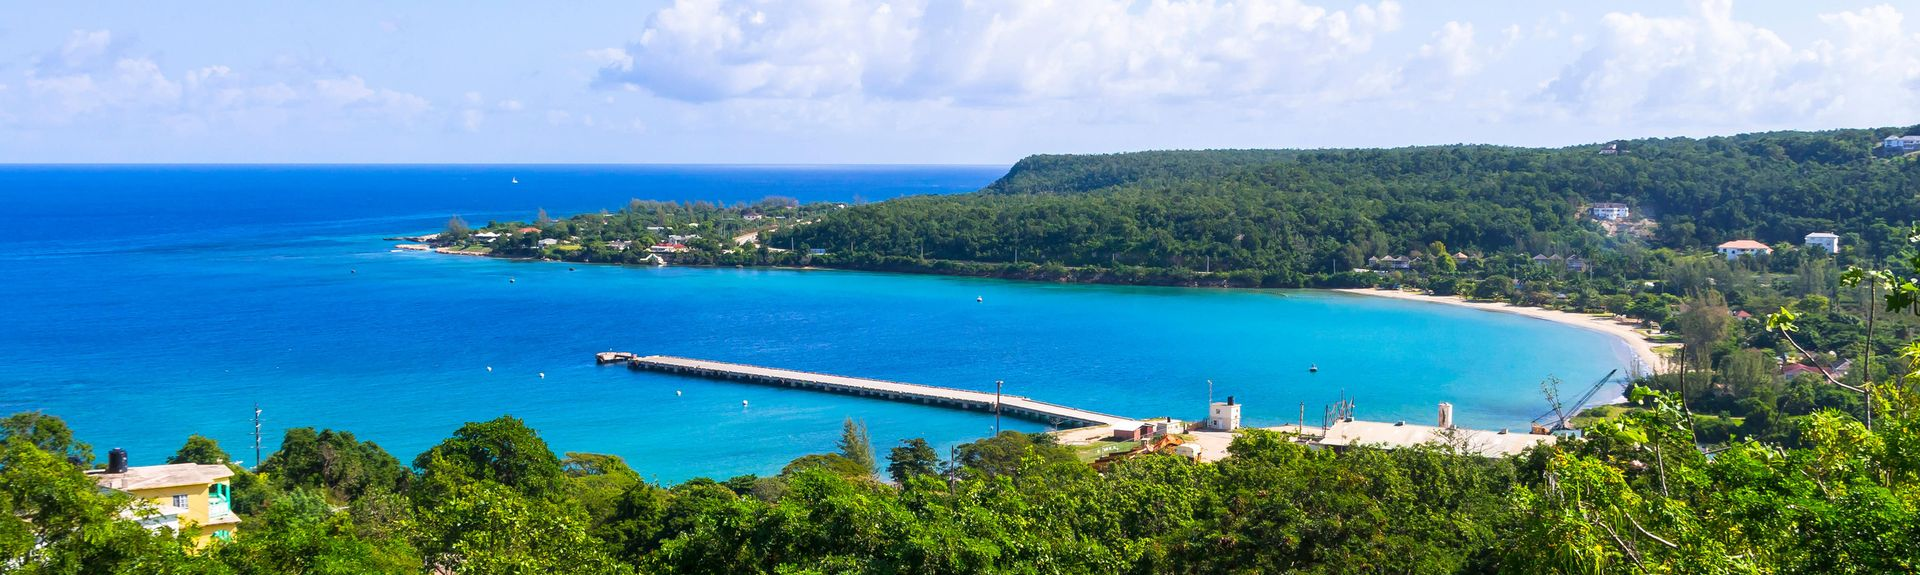 Discovery Bay, Middlesex County, Jamaica